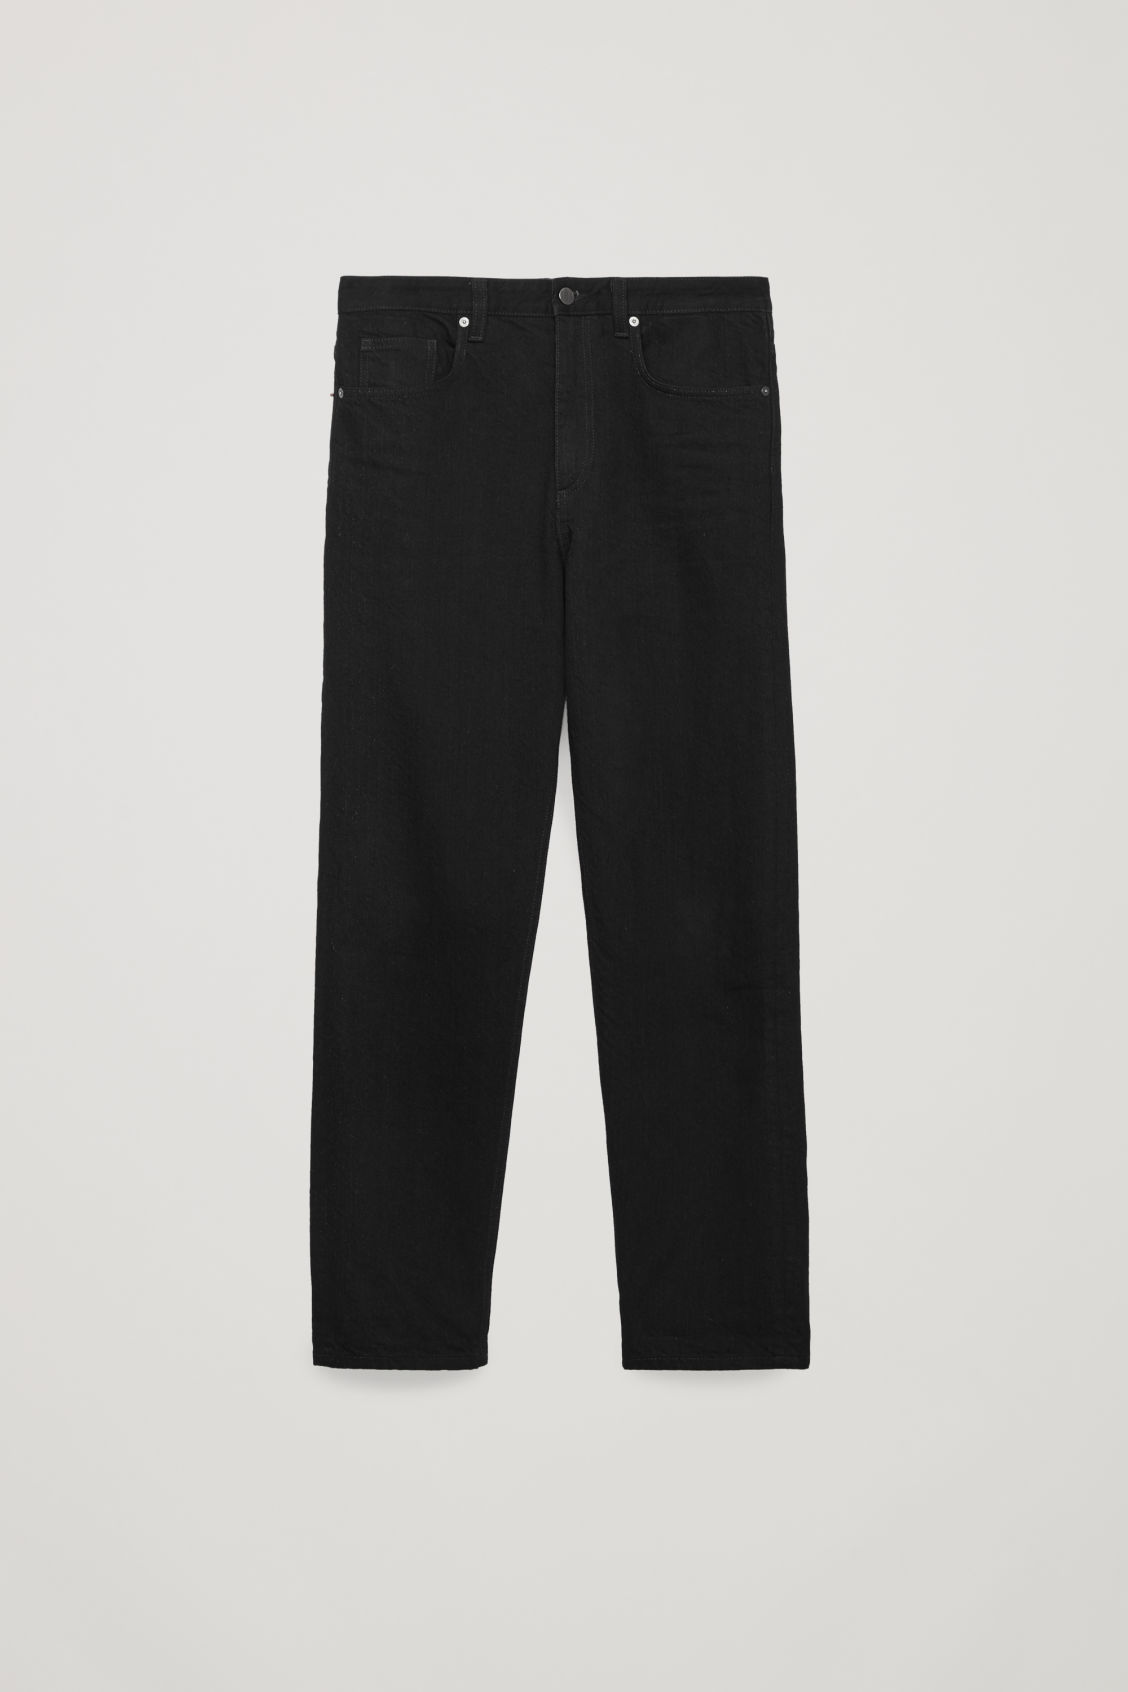 Front image of Cos 28 inch selvedge relaxed leg jeans in black